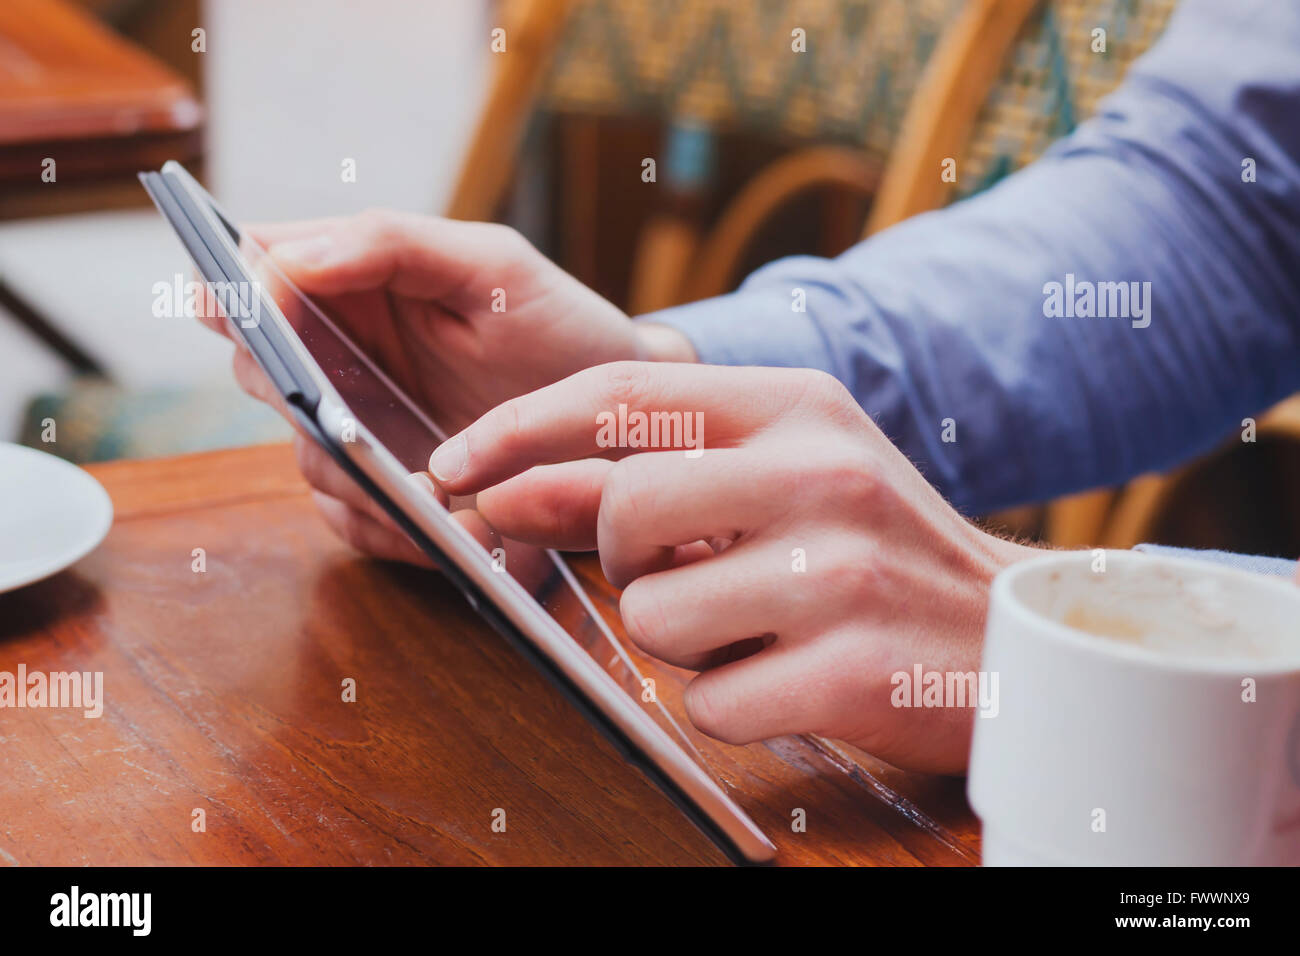 checking email on touchpad, close up of hands using digital tablet in cafe - Stock Image